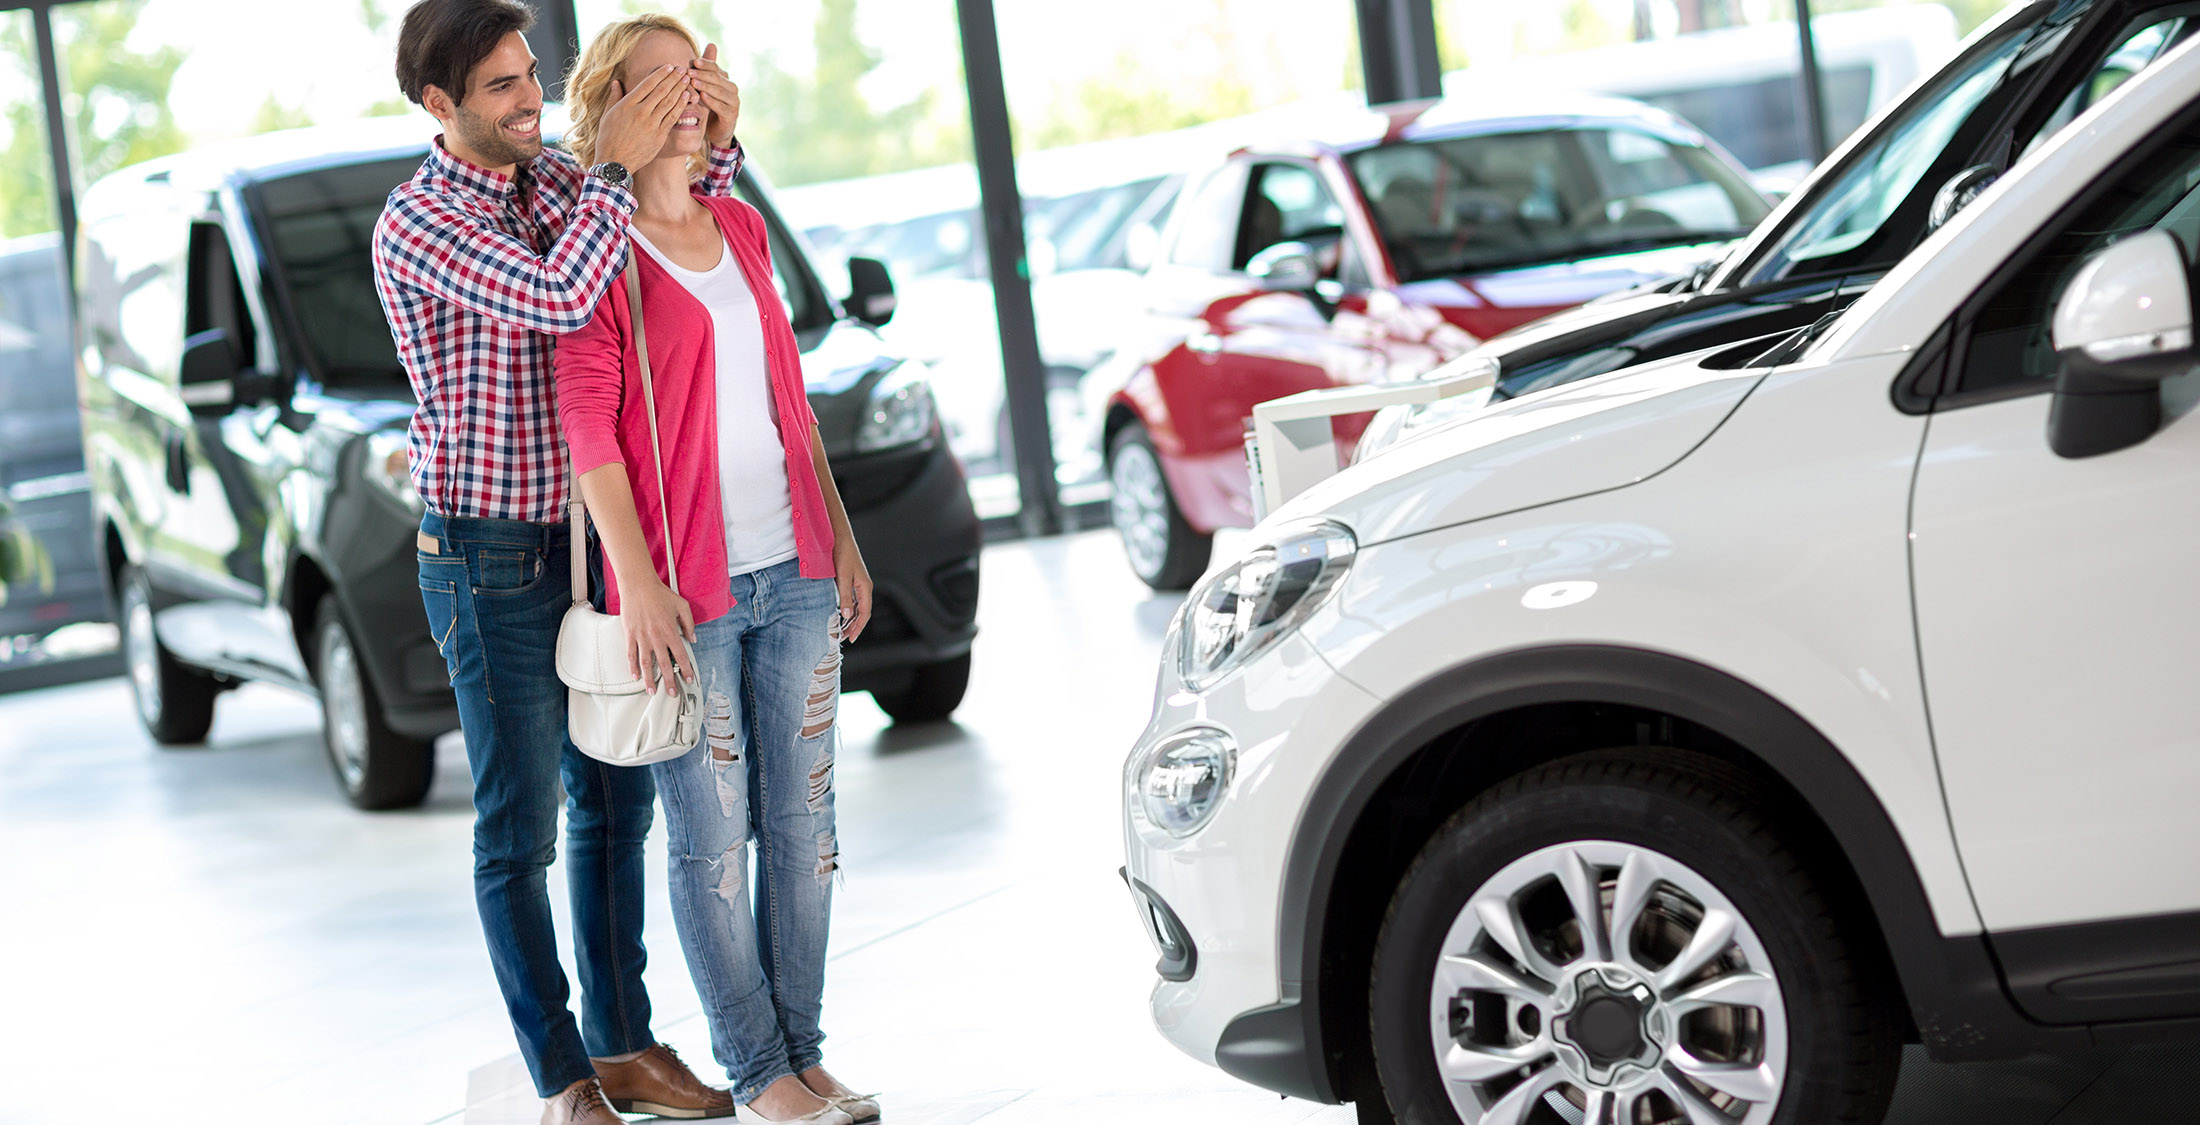 Can You Put Your Car Downpayment On Credit Card